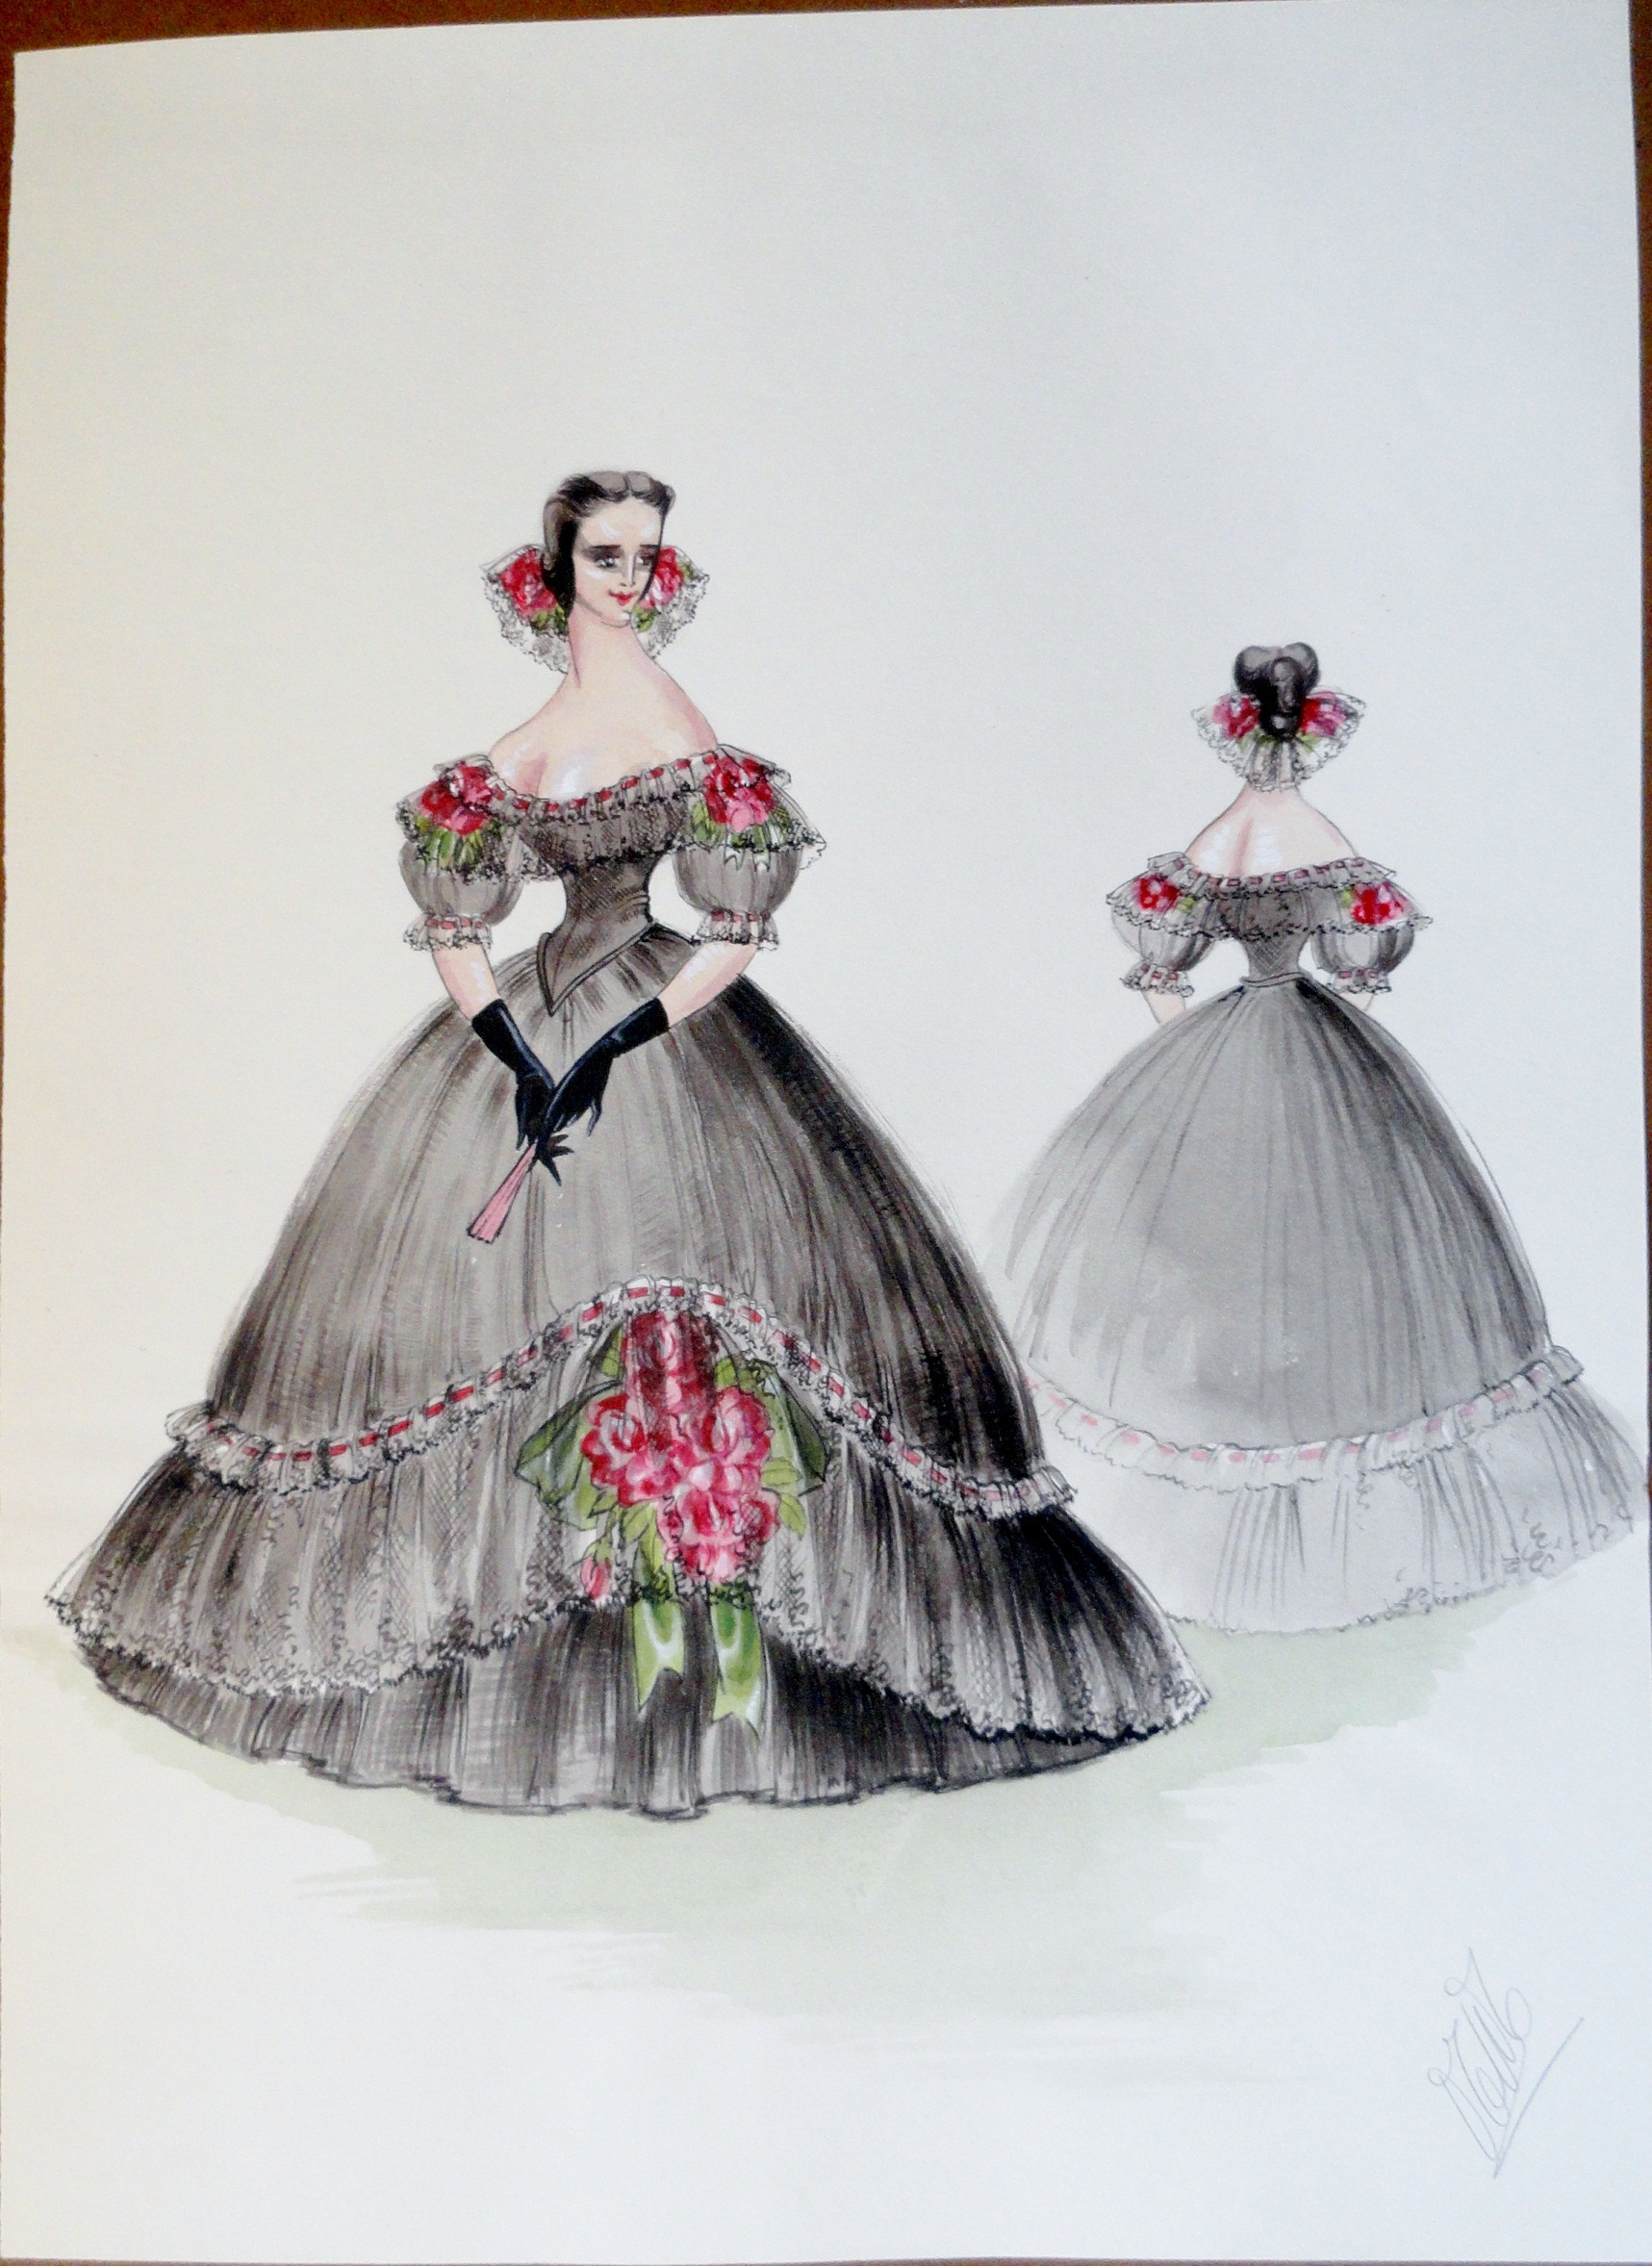 Rachel Felix in full Spanish style black gown with rose accents. Pen and Ink and Gouache. From the Rachel Portfolio by Owen Hyde Clark. Signed. $400.00.